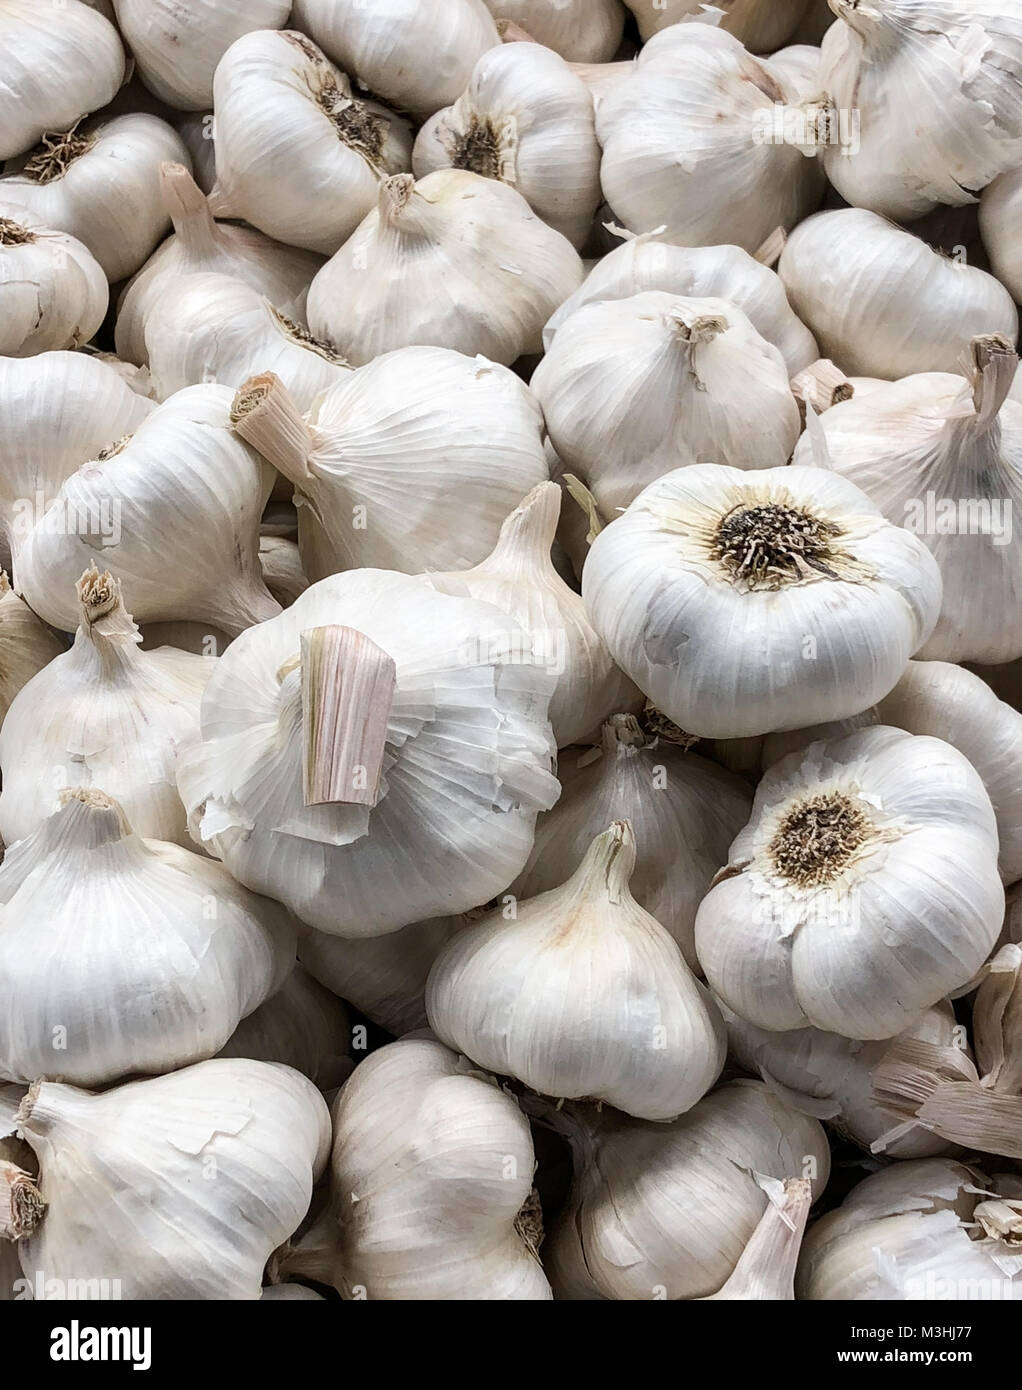 a large group of whole garlic covering frame. wallpaper and background usage vertical - Stock Image